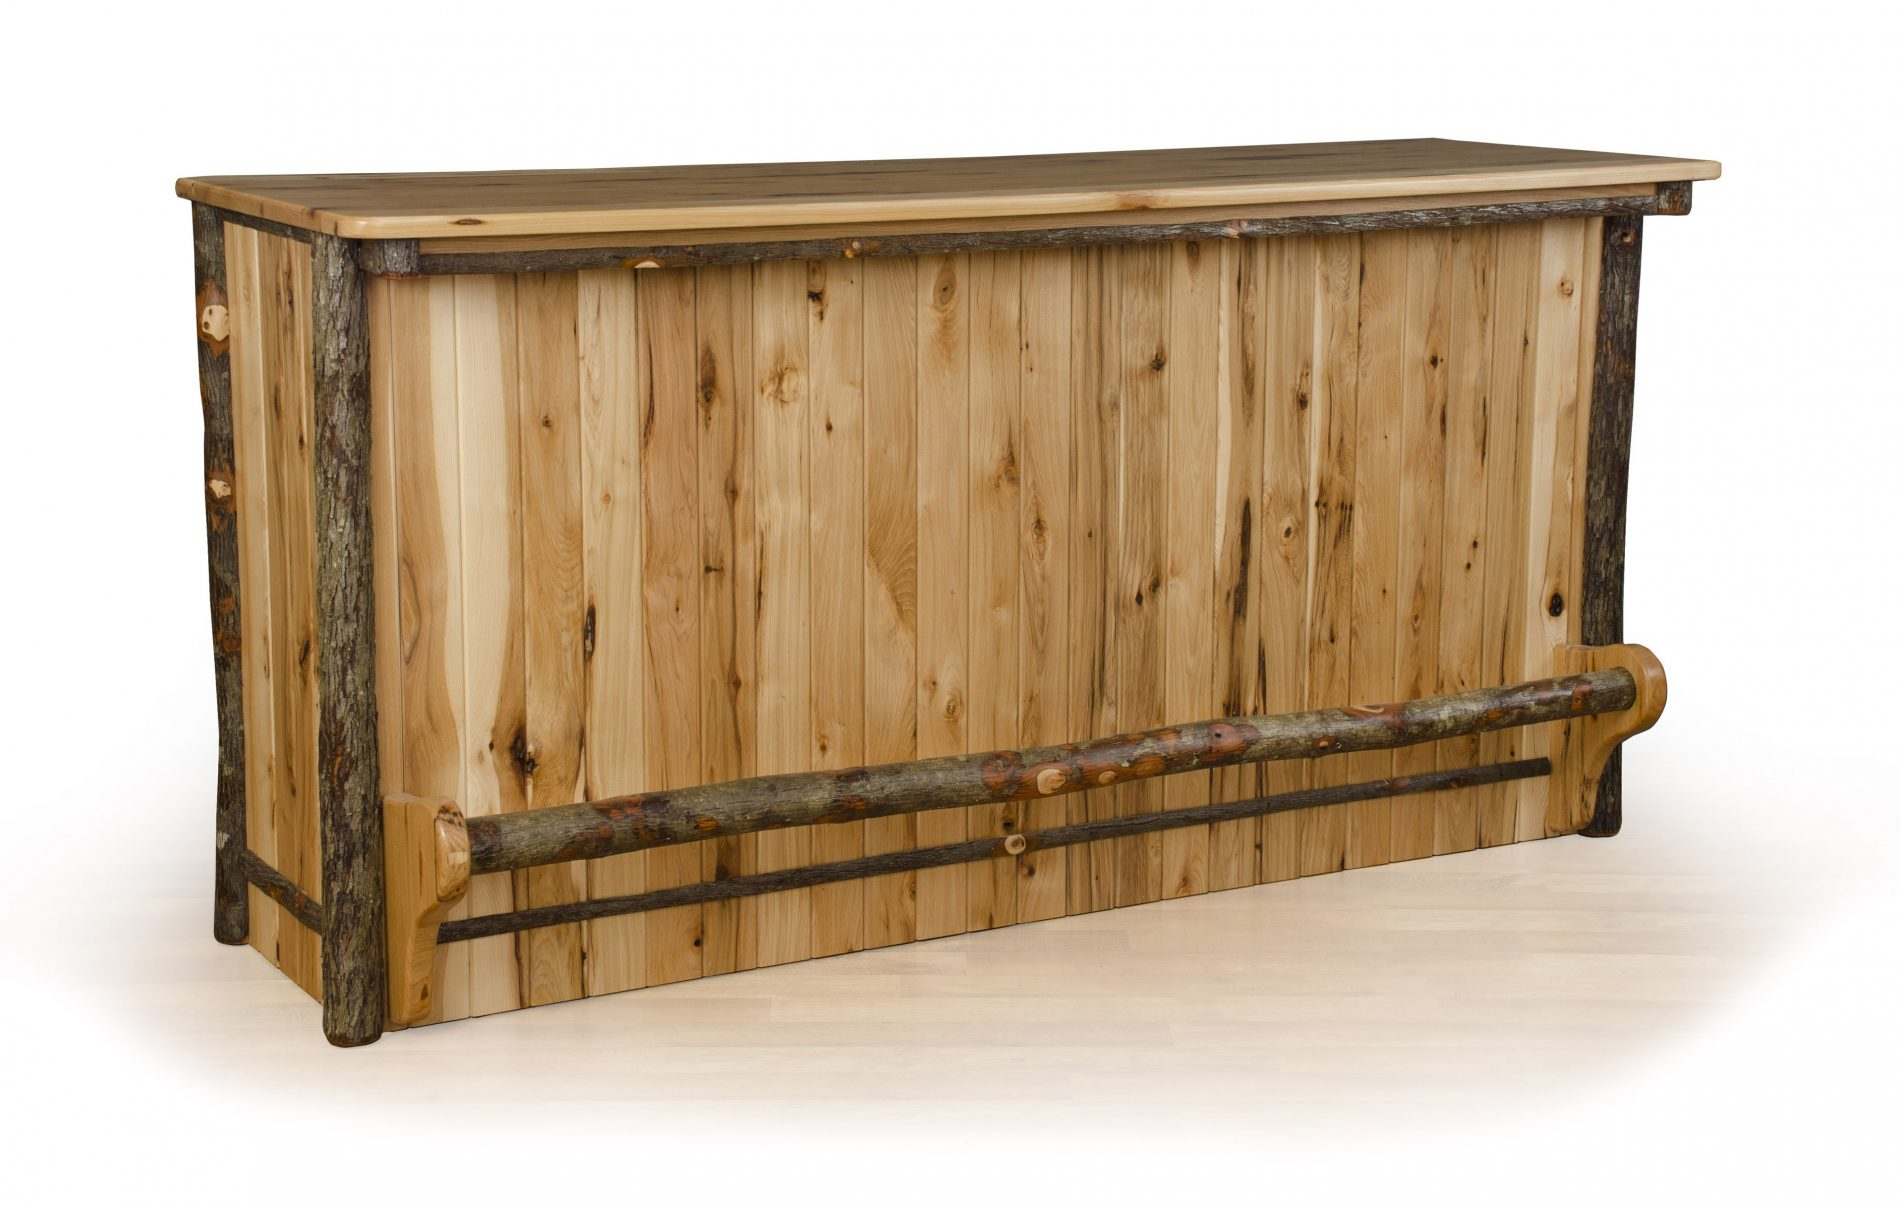 Hickory dining room furniture rustic dining furniture zook cabins bar counter log home dining rooms dzzzfo